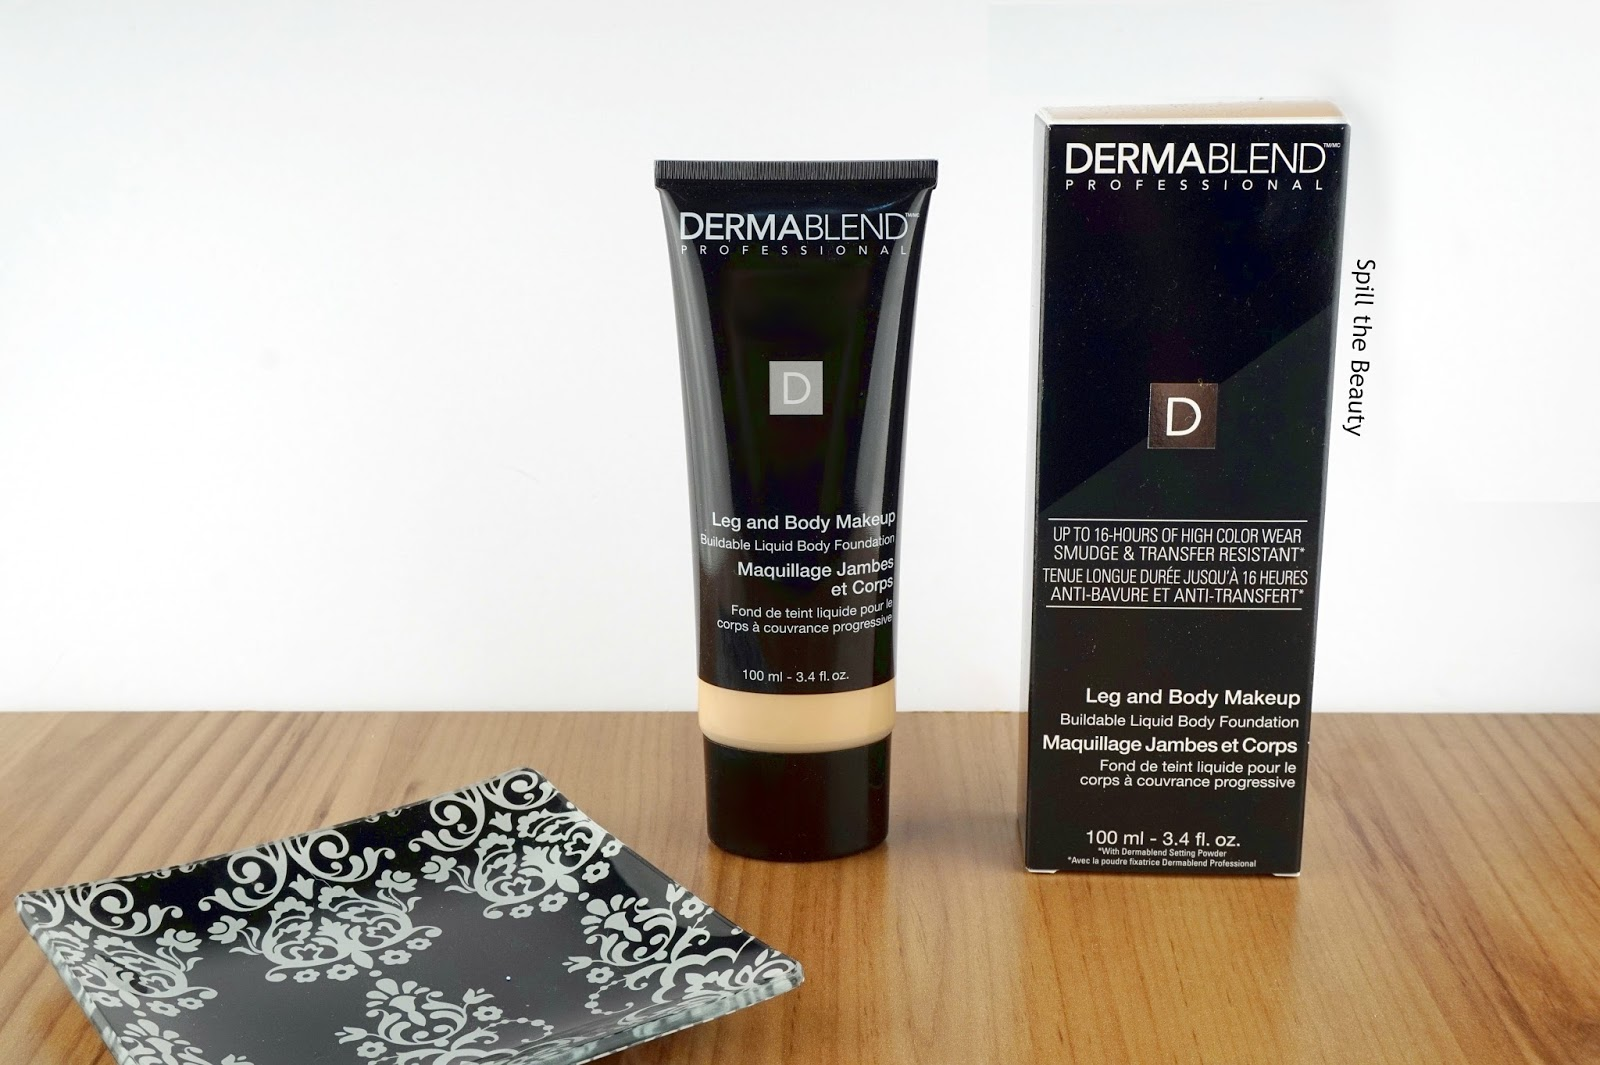 Dermablend Leg and Body Makeup in 'Fair Ivory' – Review, swatches, Before & After